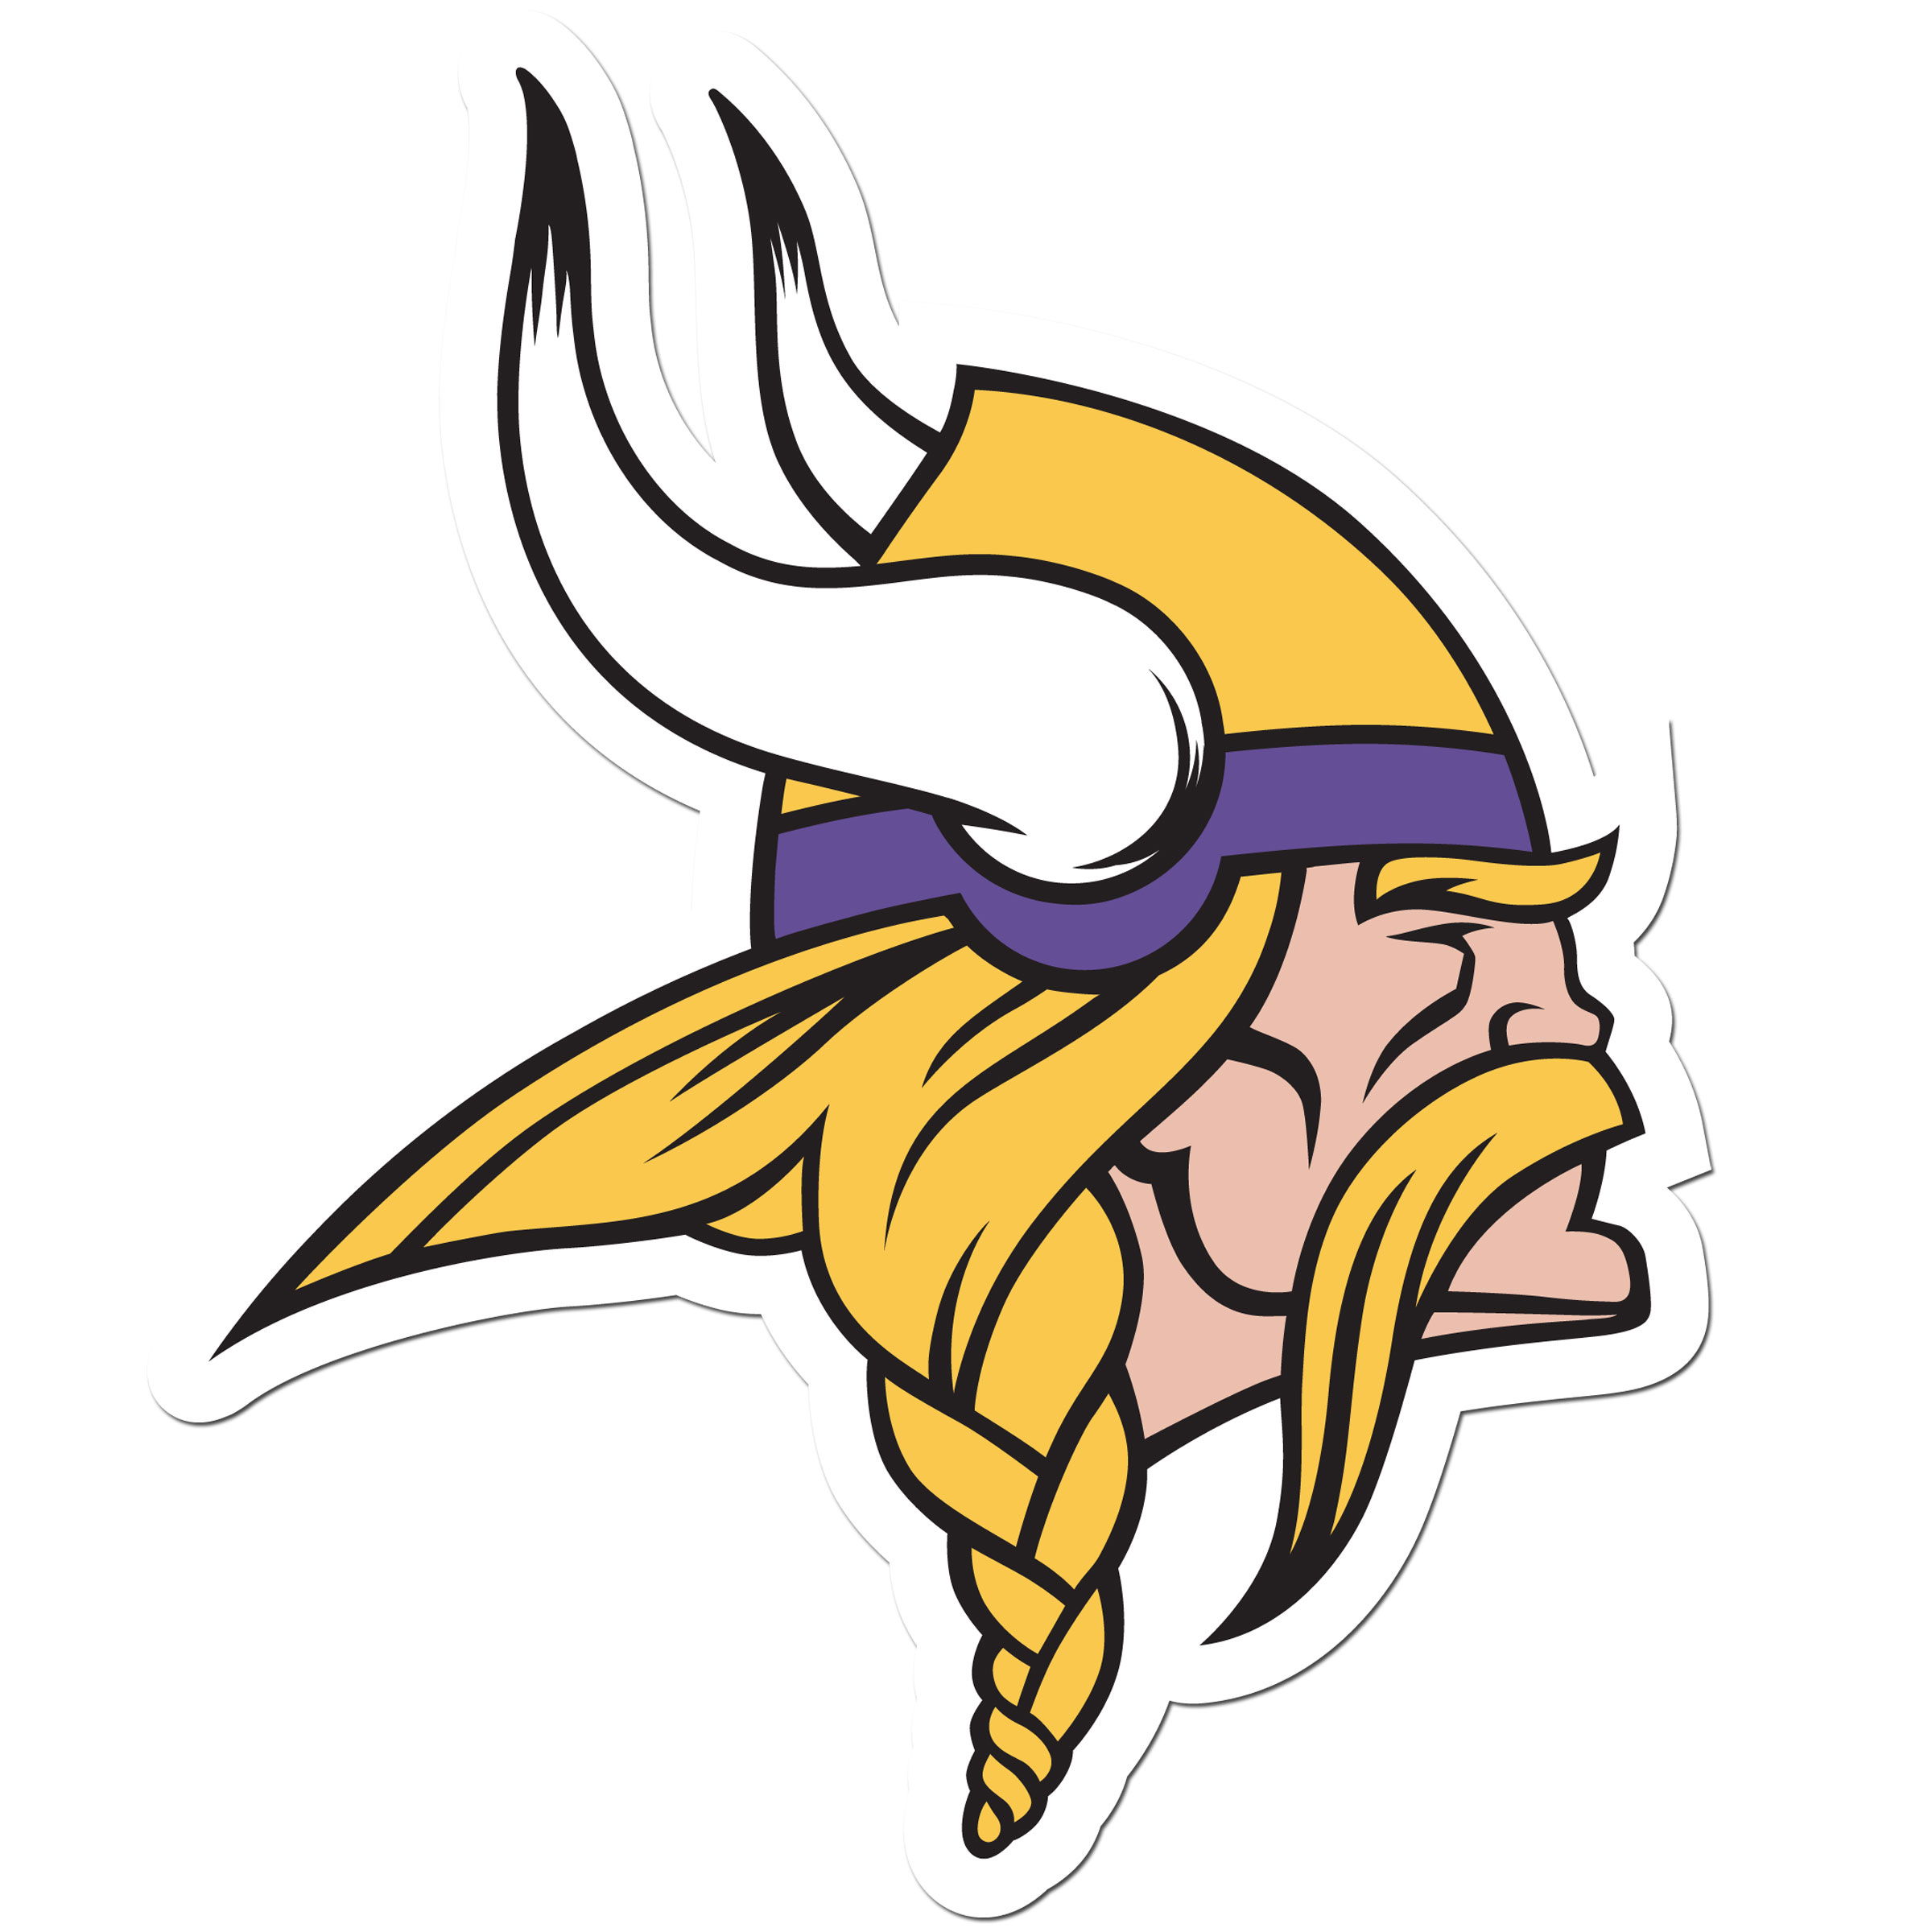 Minnesota Vikings 8 inch Auto Decal - This bold, 8 inch Minnesota Vikings is a great way to show off your team pride! The low tack vinyl decal is easily positioned and adjusted to make sure you get that logo in just the right spot on your vehicle. Designed to be used on the outside of the window.